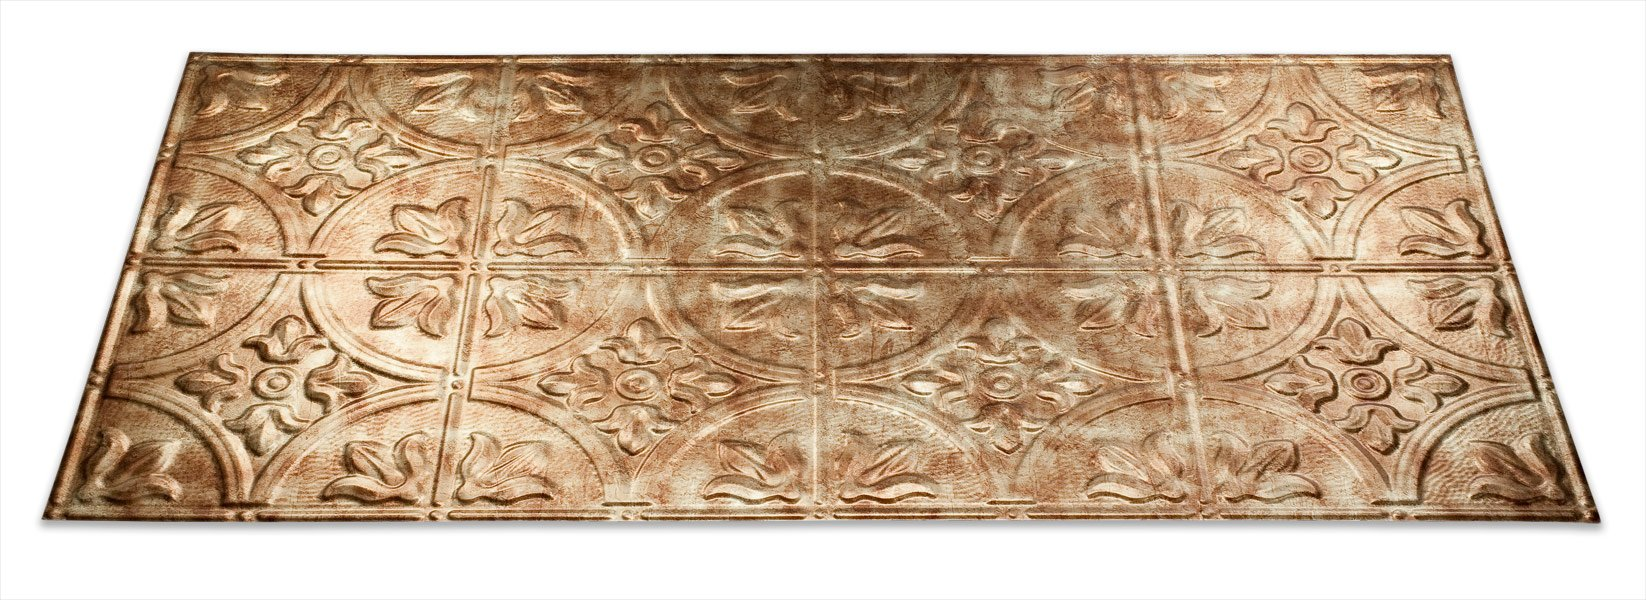 Fasade Easy Installation Traditional 2 Bermuda Bronze Glue Up Ceiling Tile/Ceiling Panel (2' x 4' Panel)